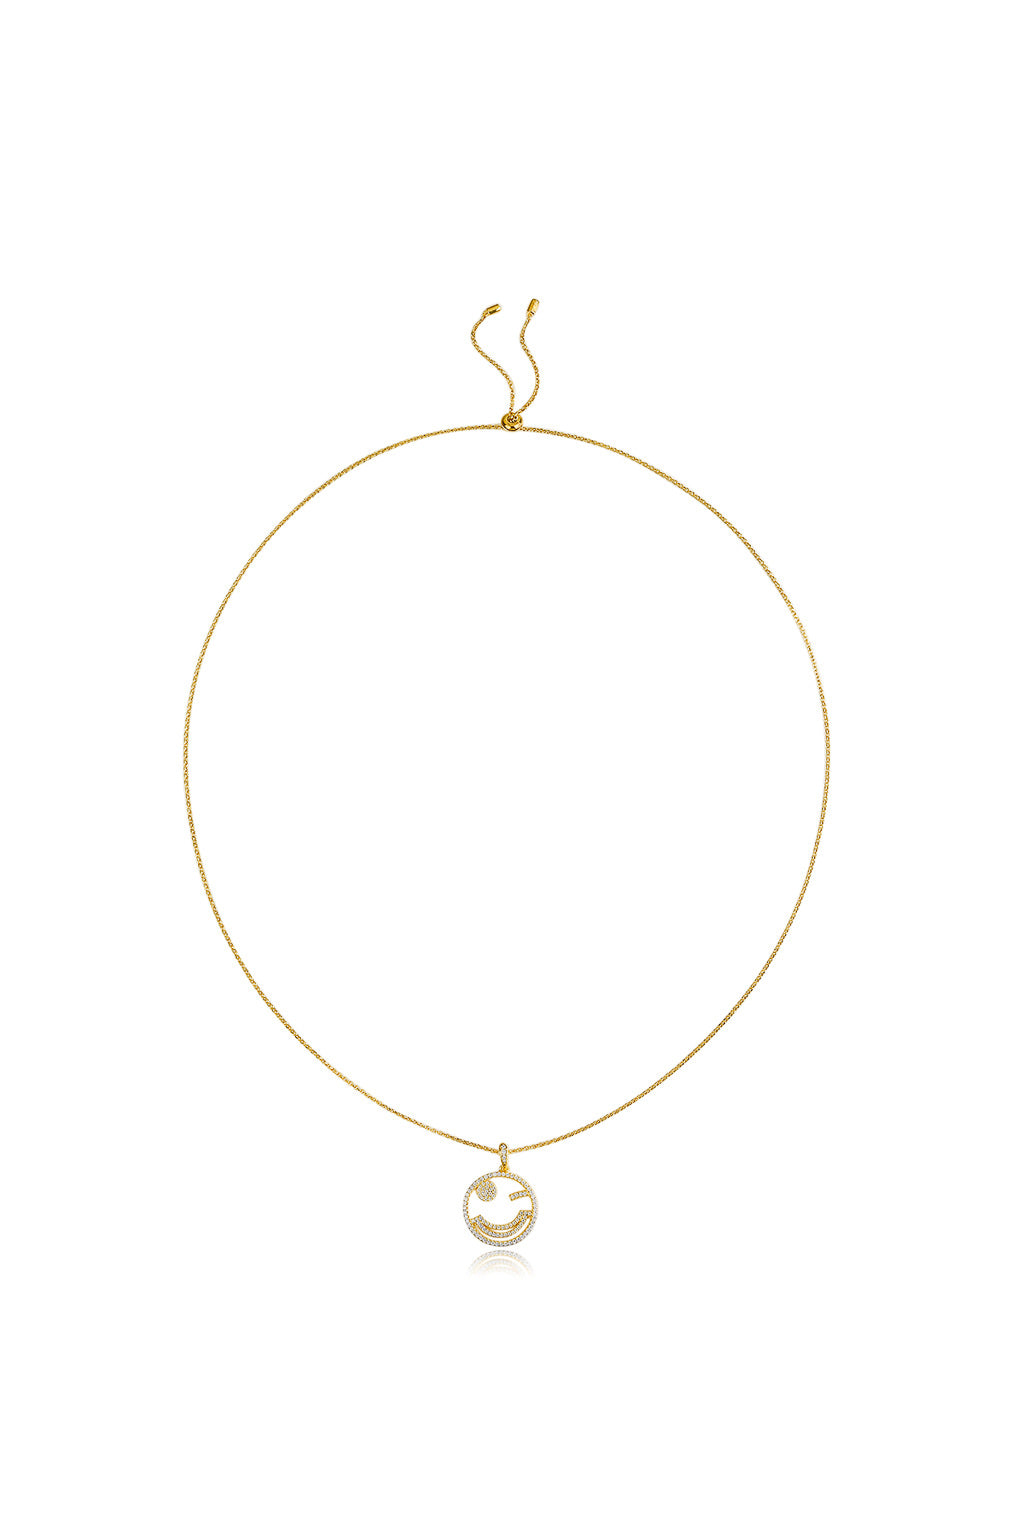 Emoji Naughty Wink Gold Plated Silver Necklace Detail